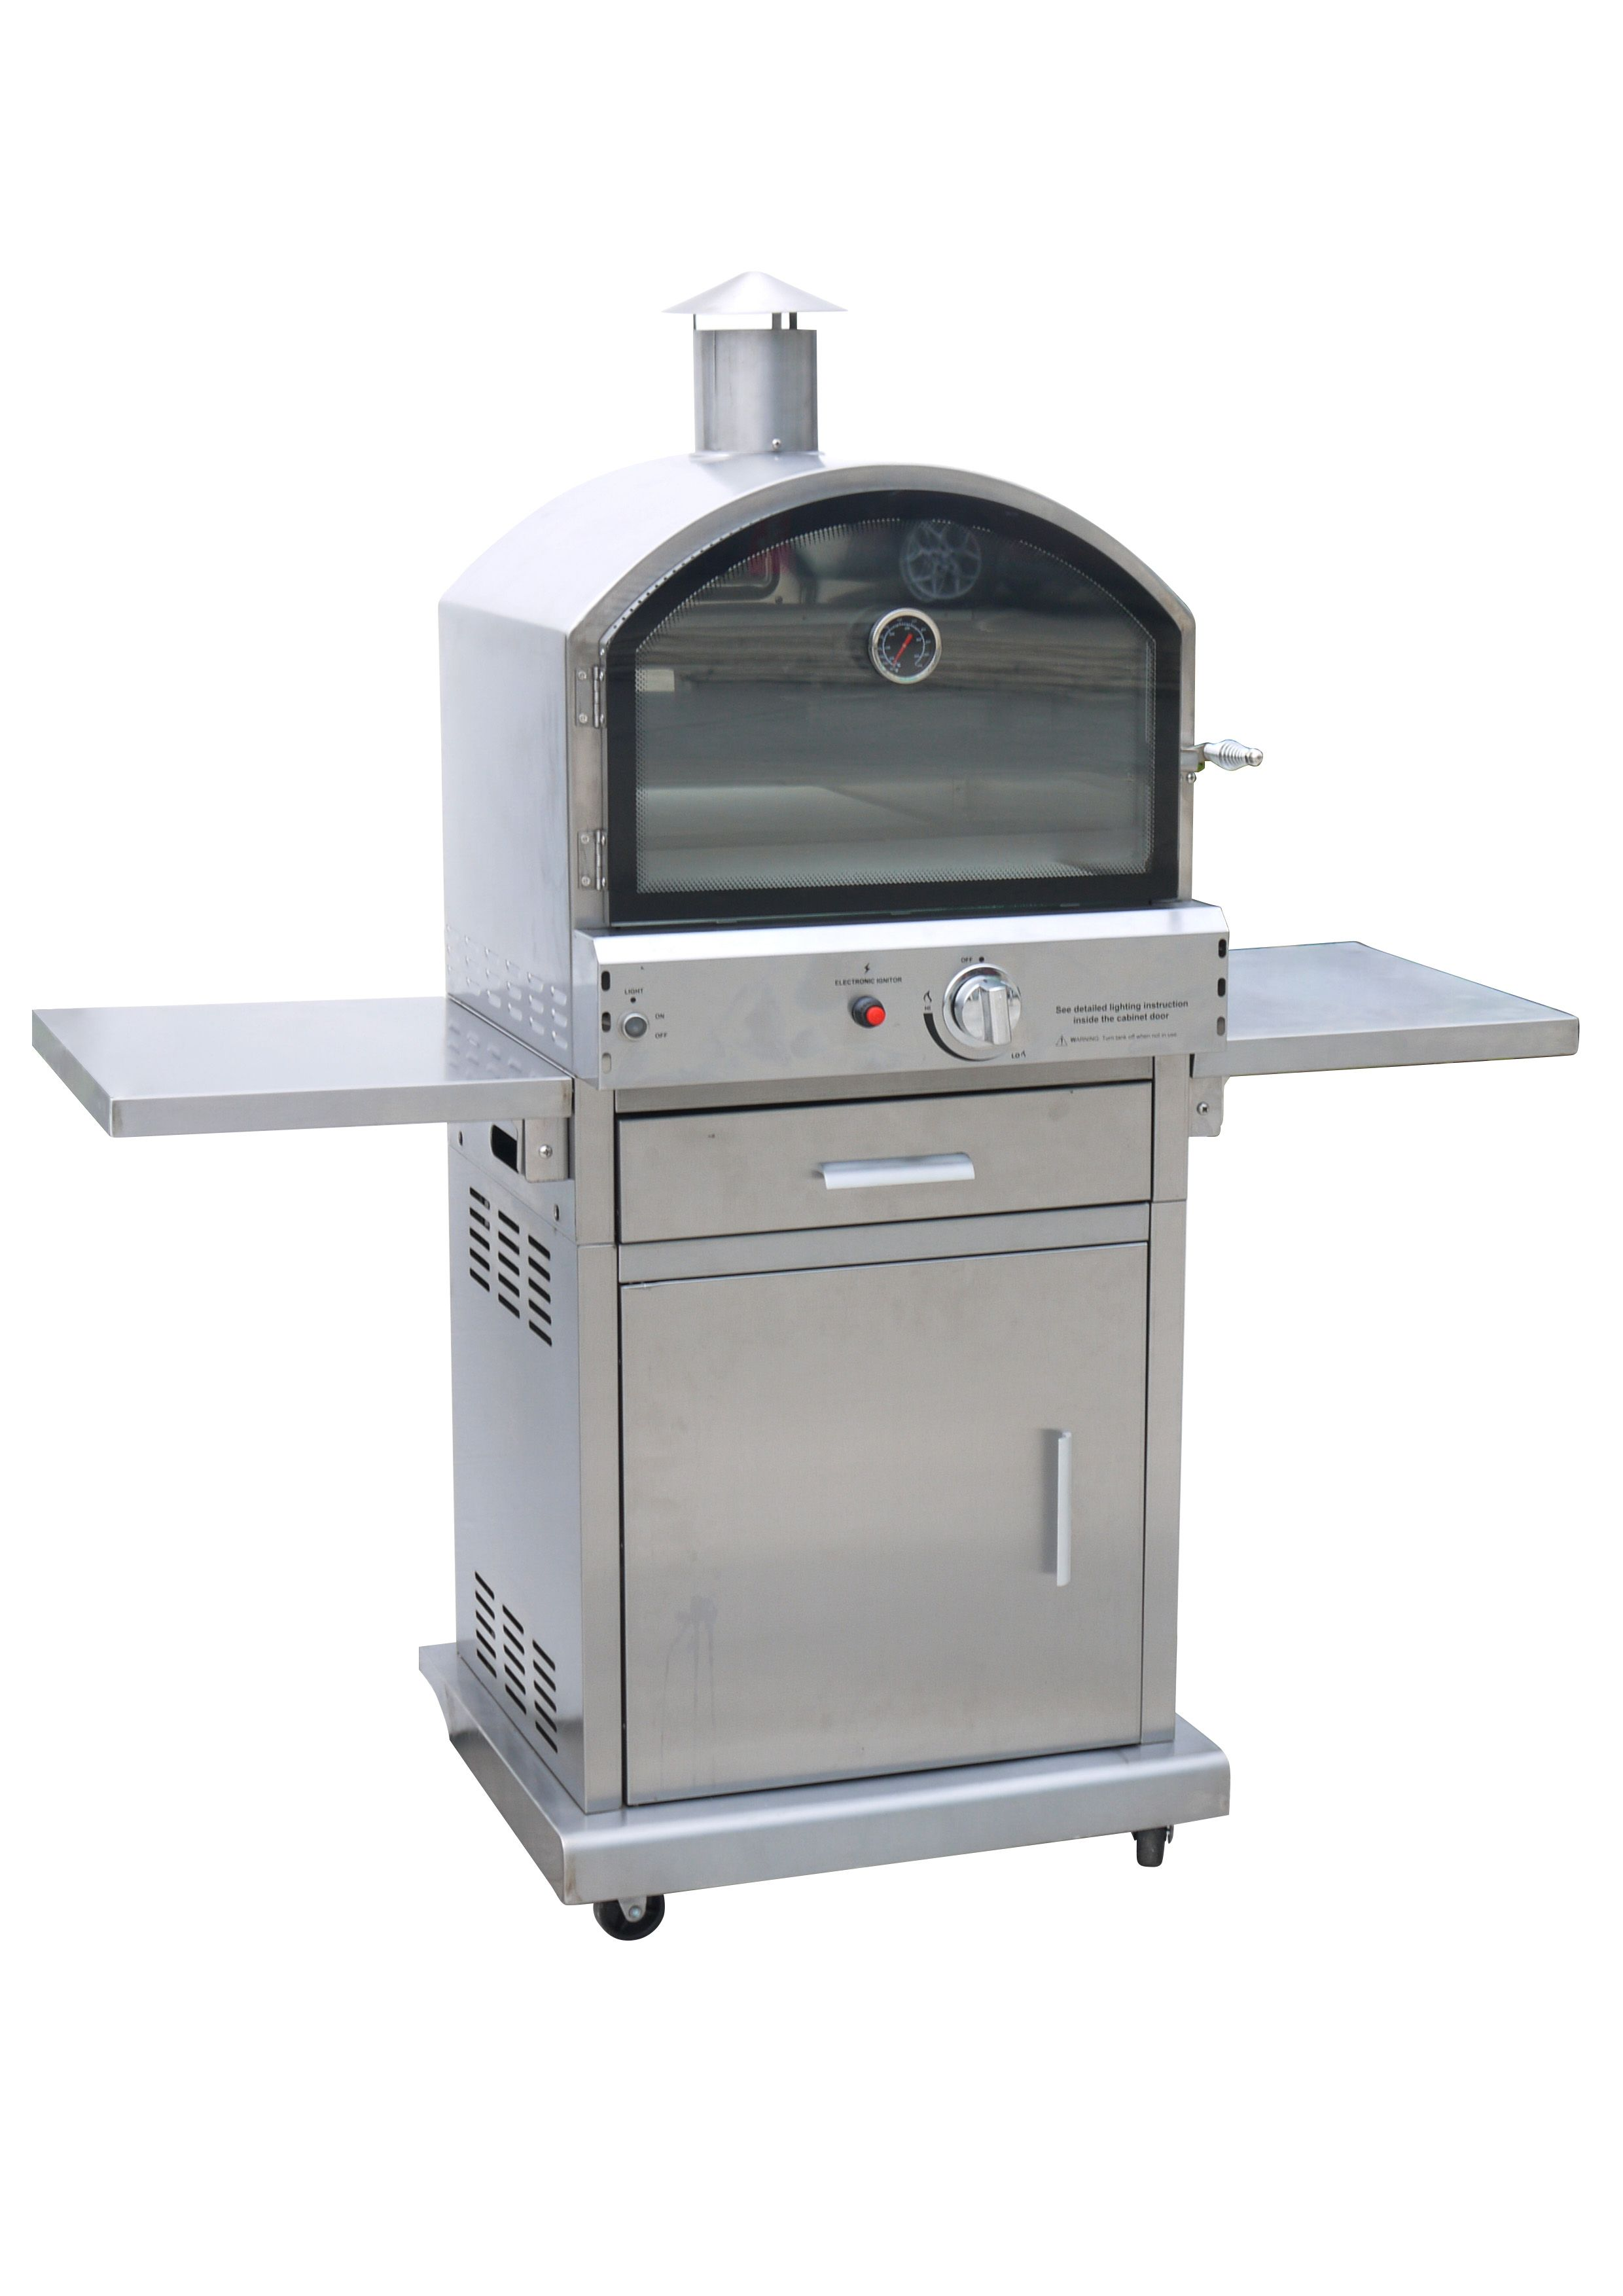 4 Ways To Keep Your Outdoor Kitchen Properly Maintained Pizza Oven Outdoor Gas Pizza Oven Outdoor Gas Pizza Oven